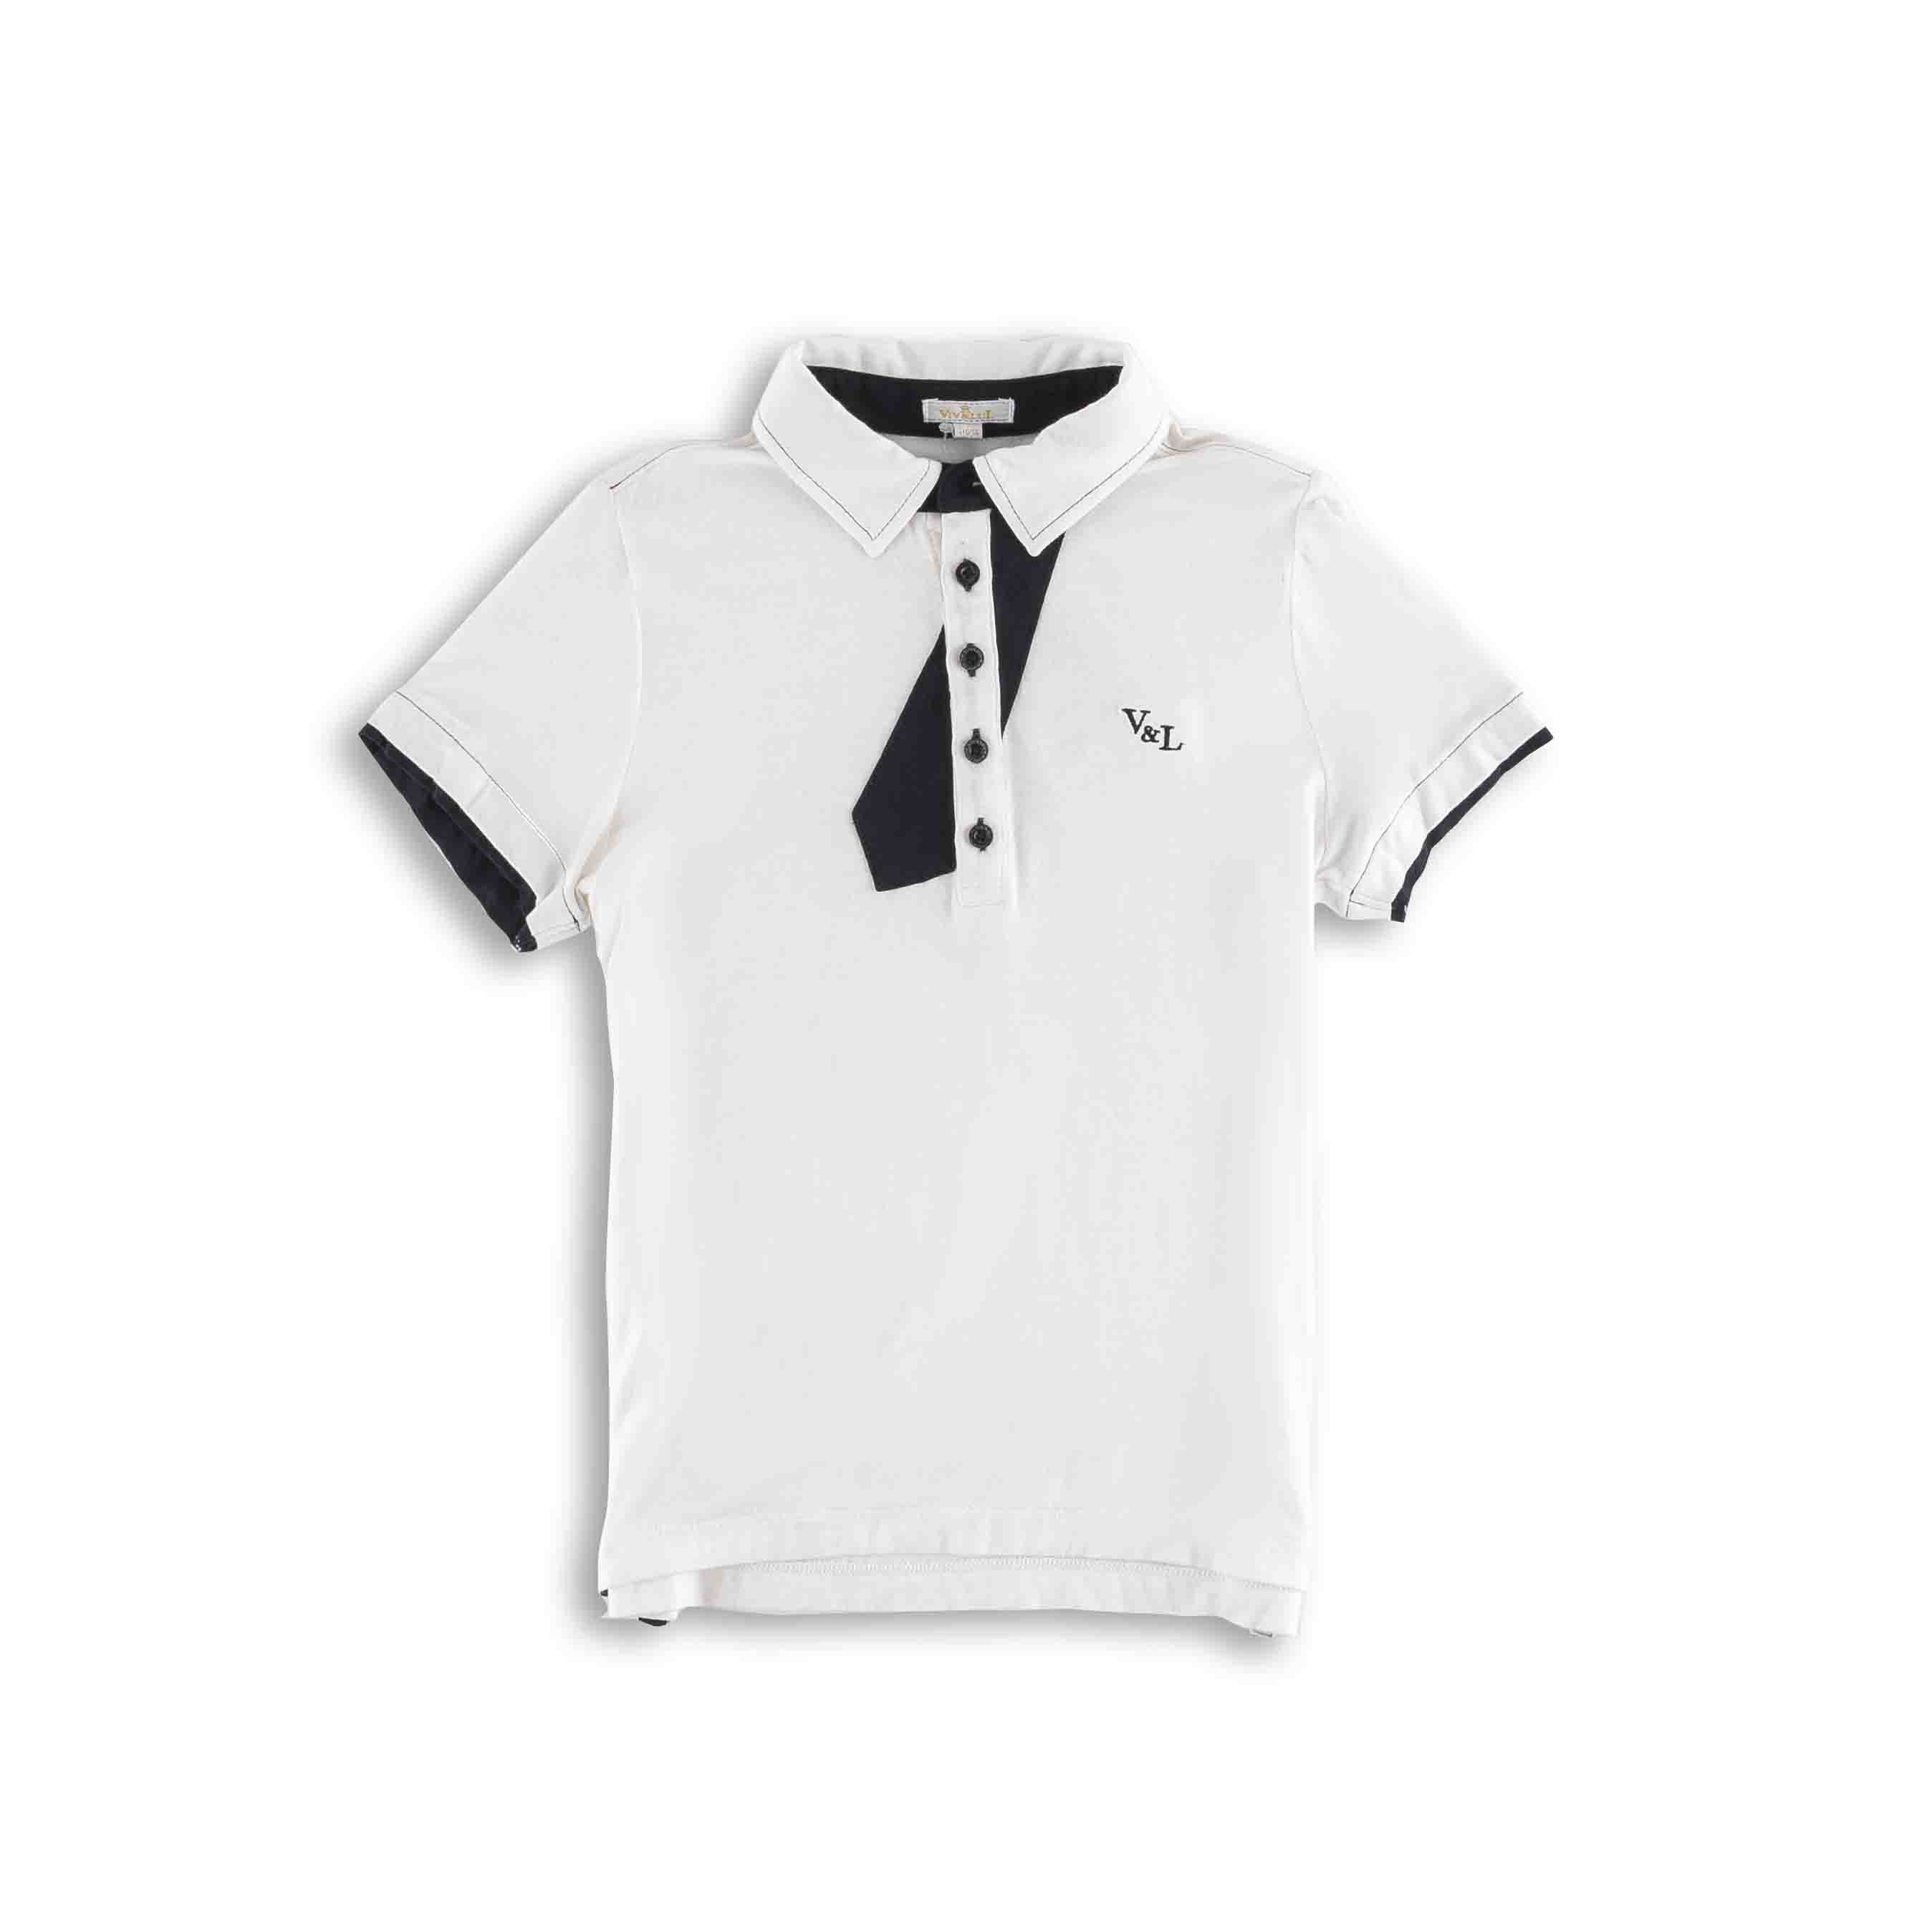 VIV & LUL Boy's Polo Shirt